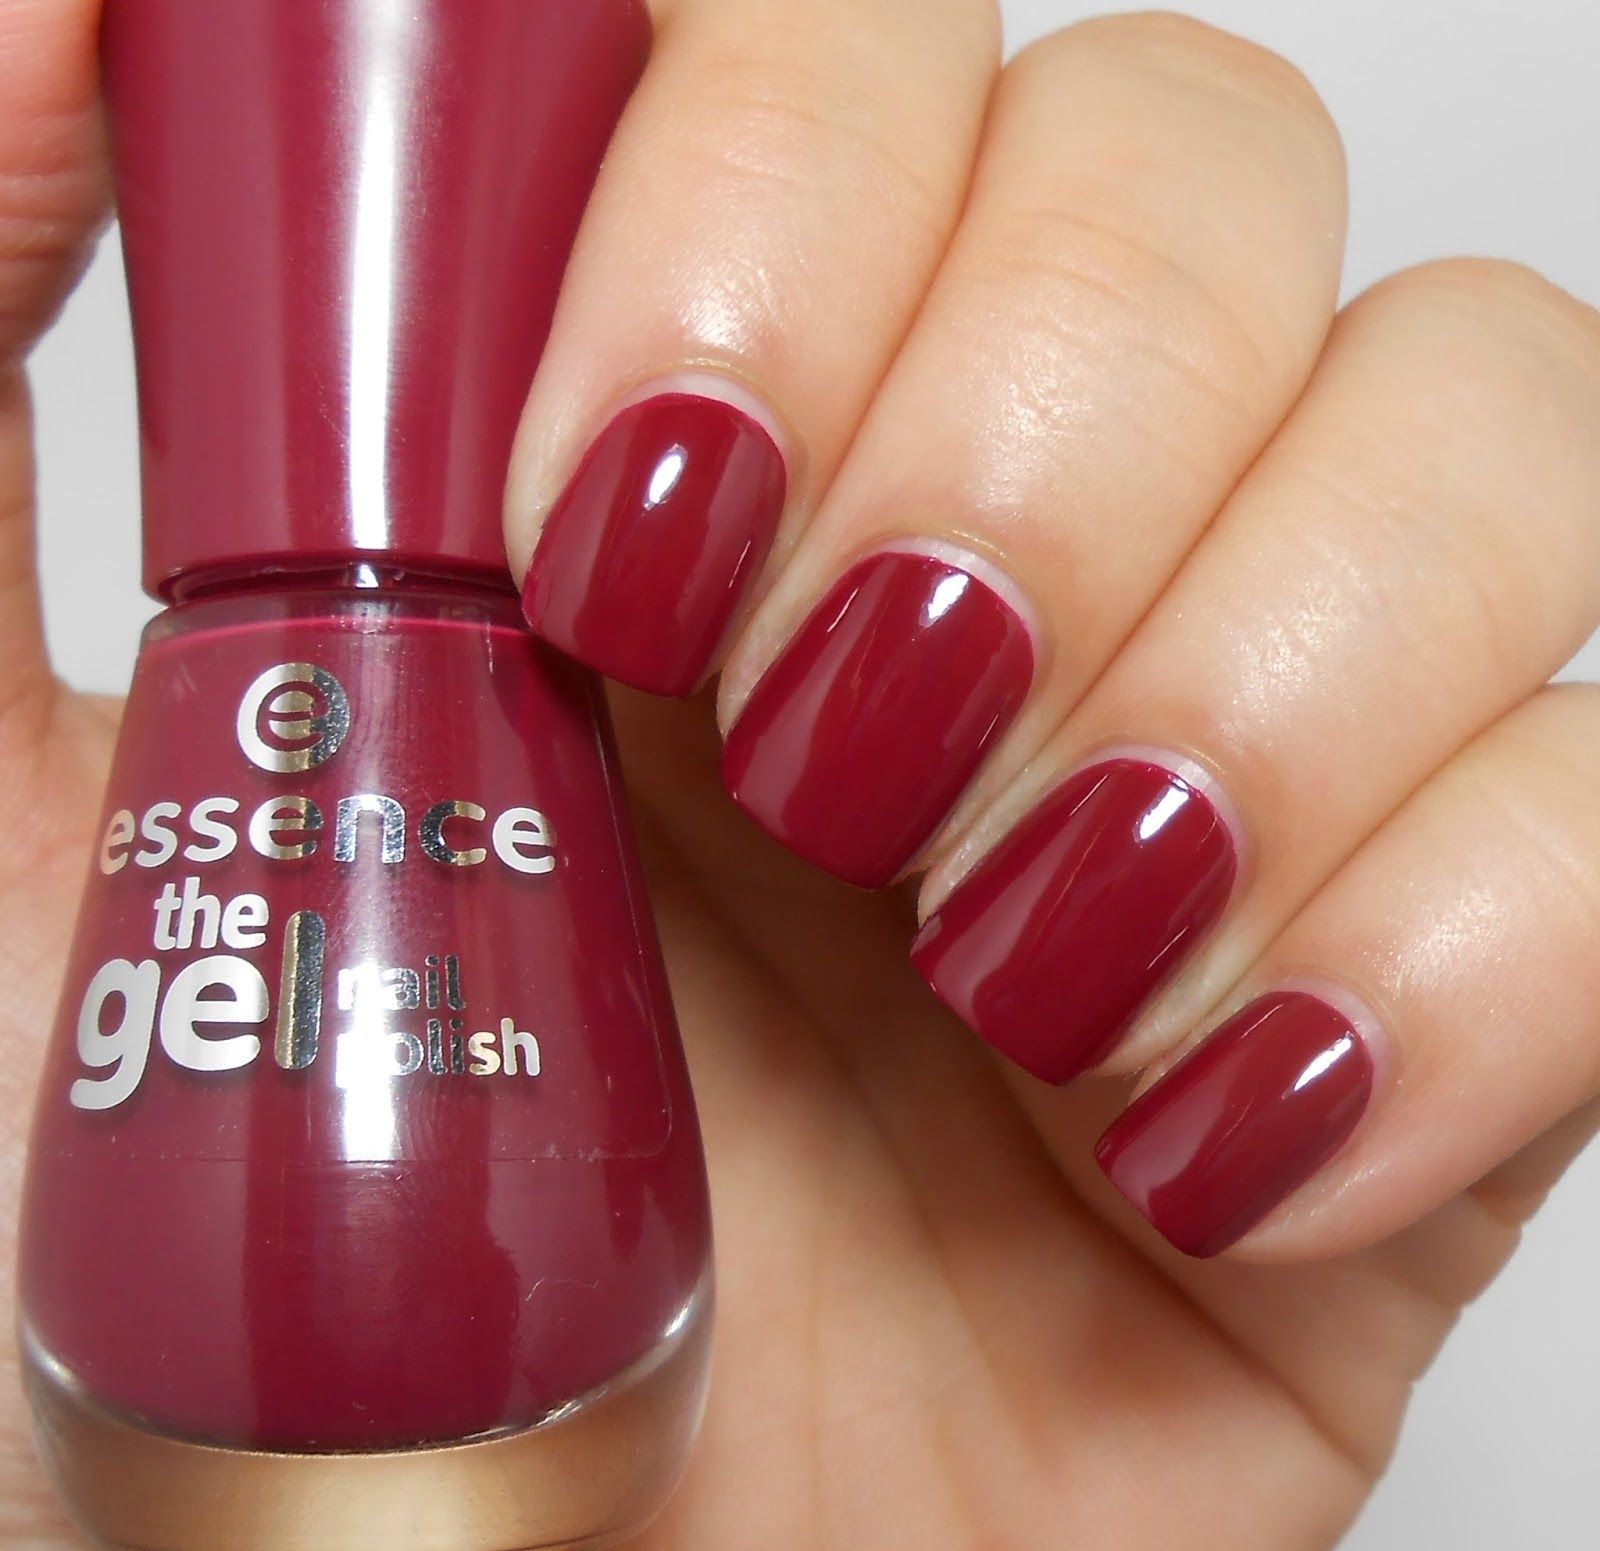 Review And Swatches Essence The Gel Nail Polish Comparisons Manikura Nehty Krasa